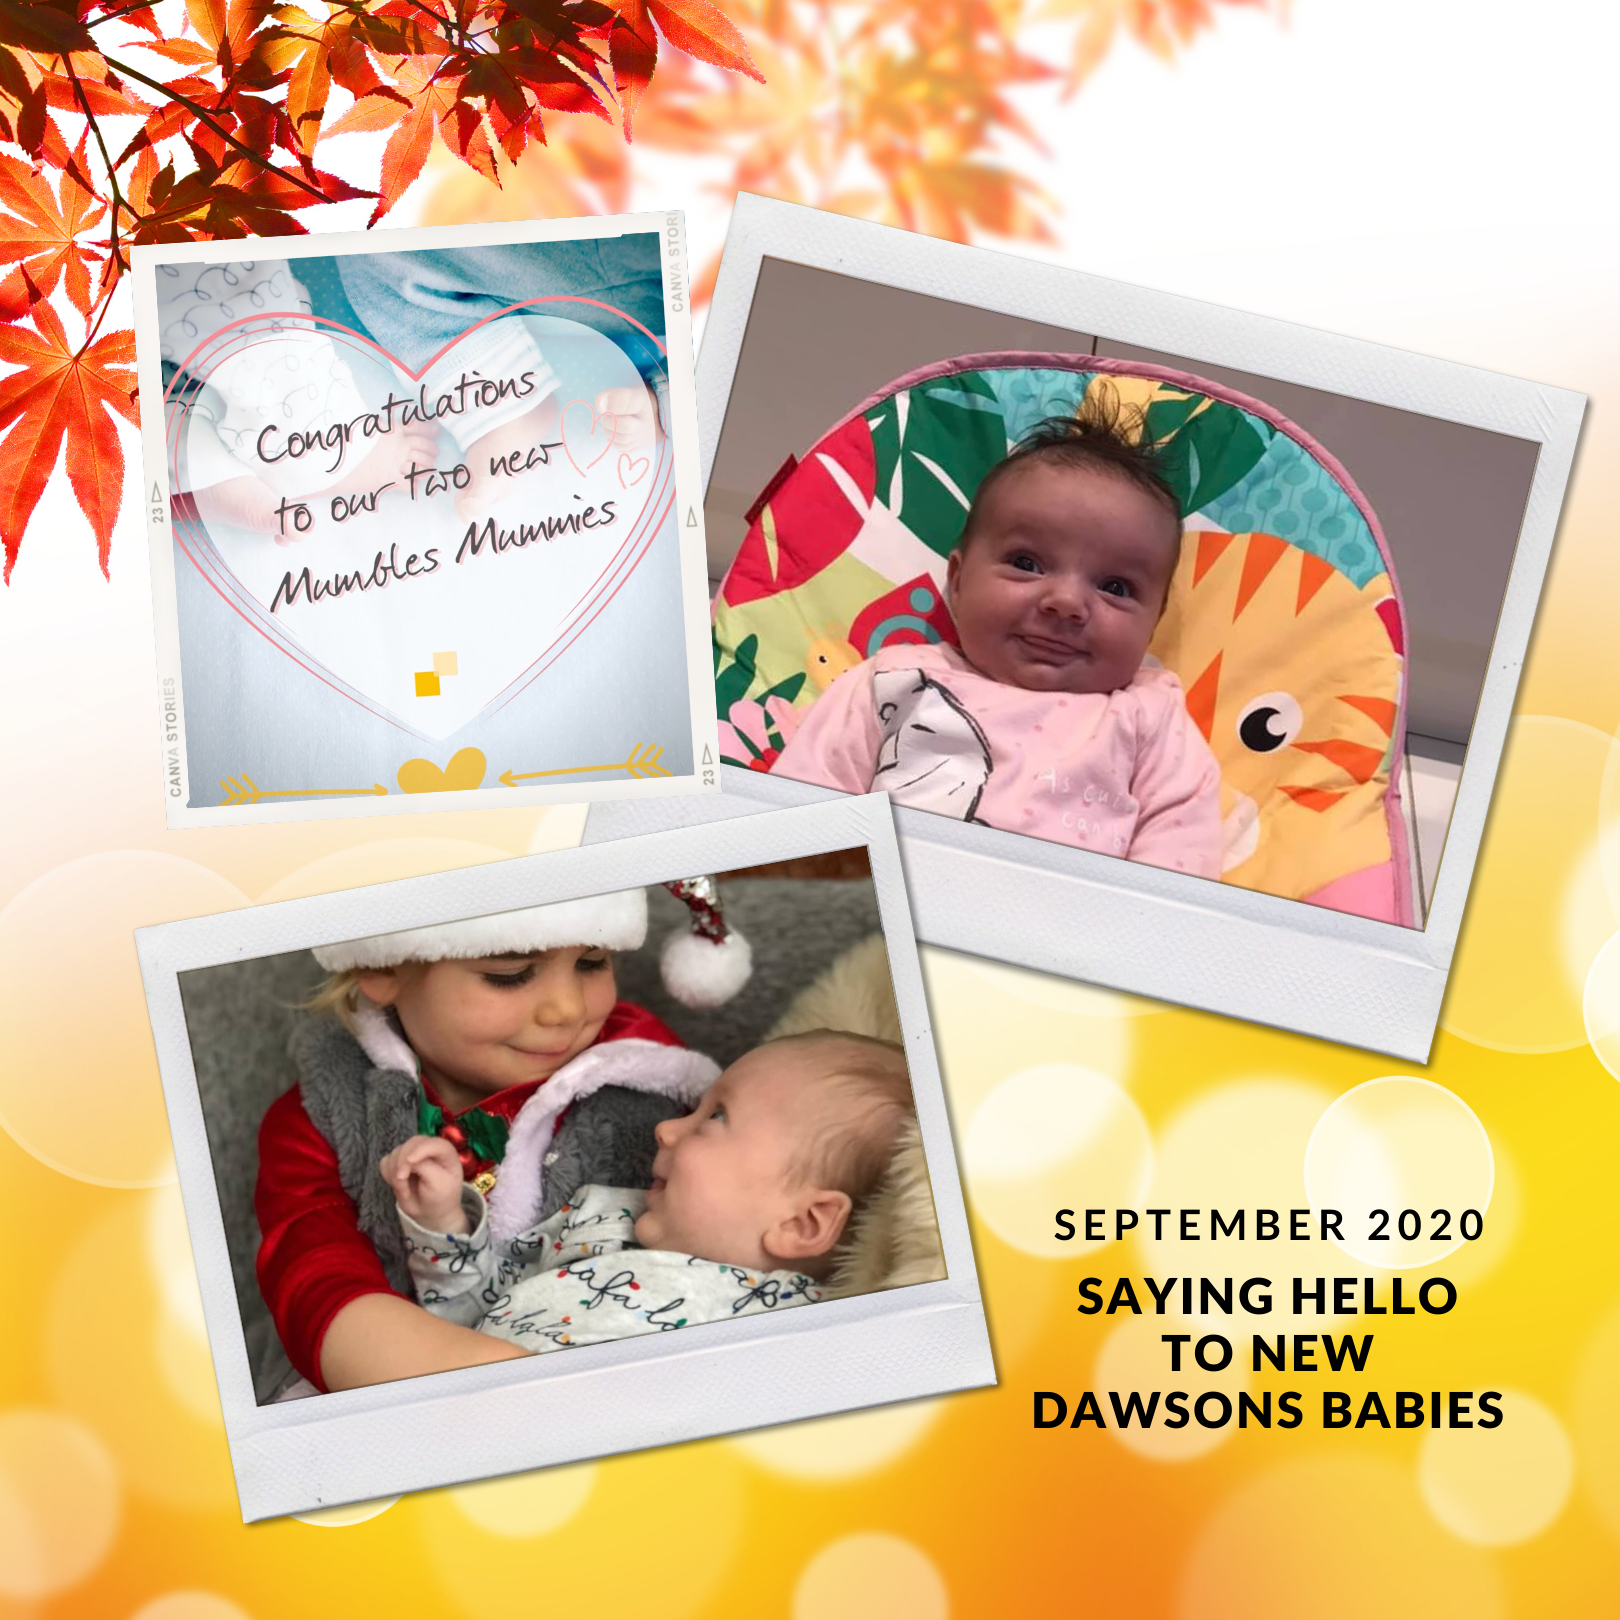 Dawsons welcome 2 new babies into their family